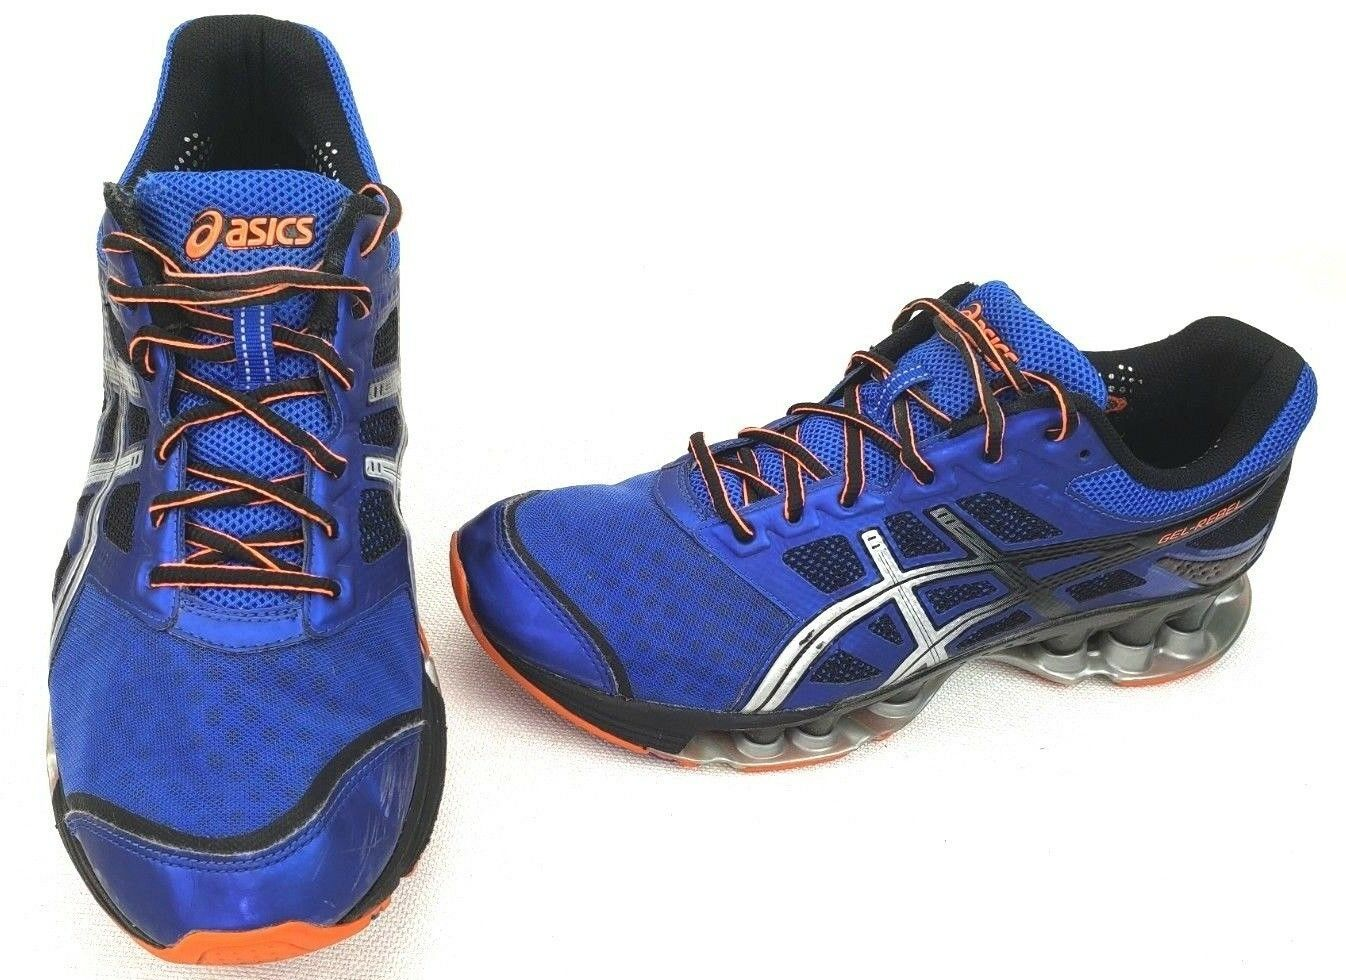 b7134954 Asics Mens 11 Size orange Silver bluee shoes Athletic Running Rebel ...